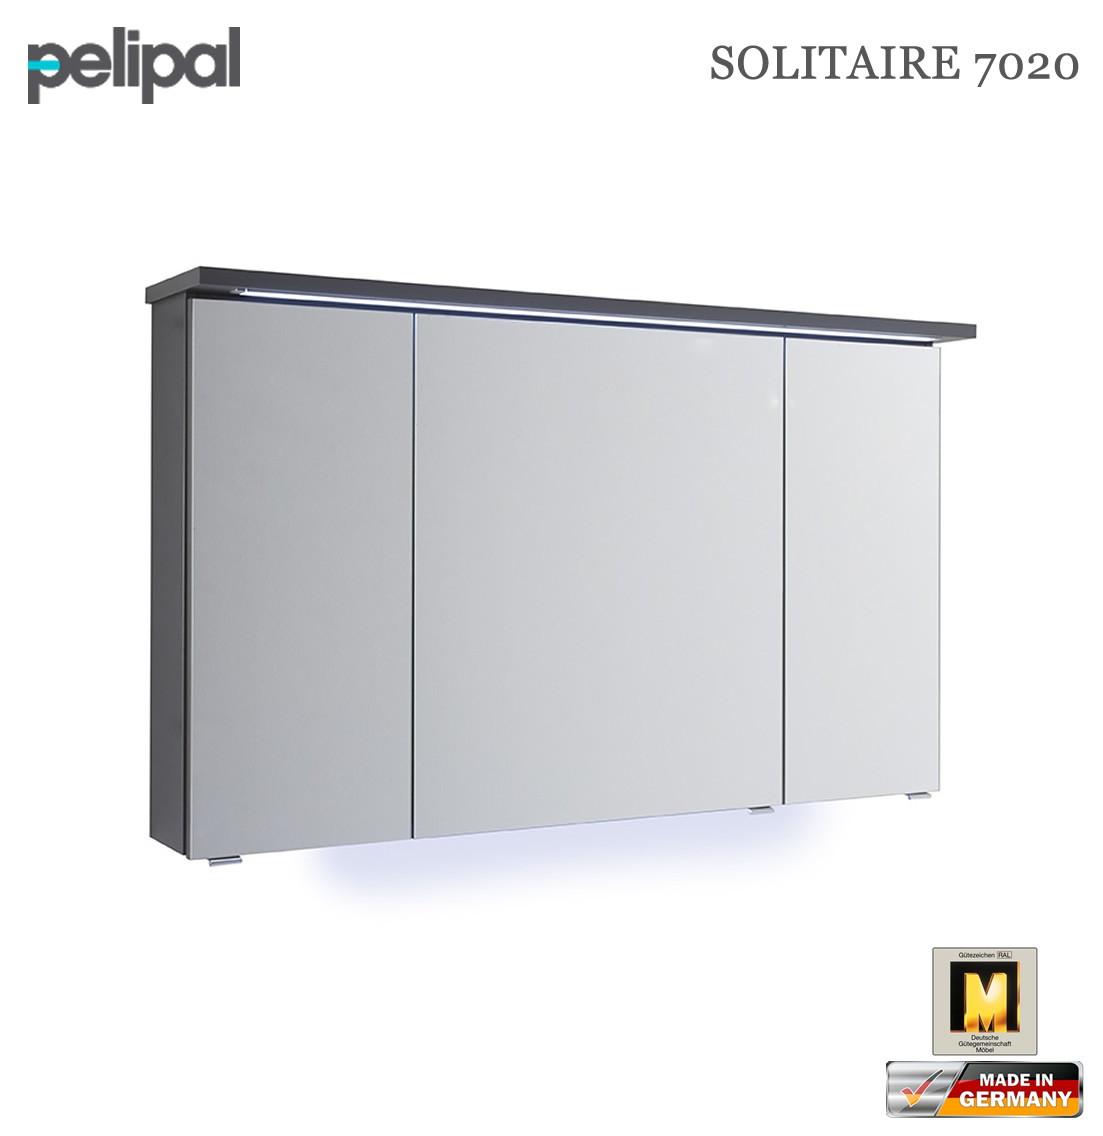 pelipal solitaire 7020 spiegelschrank 120 cm 7020 sps 02. Black Bedroom Furniture Sets. Home Design Ideas